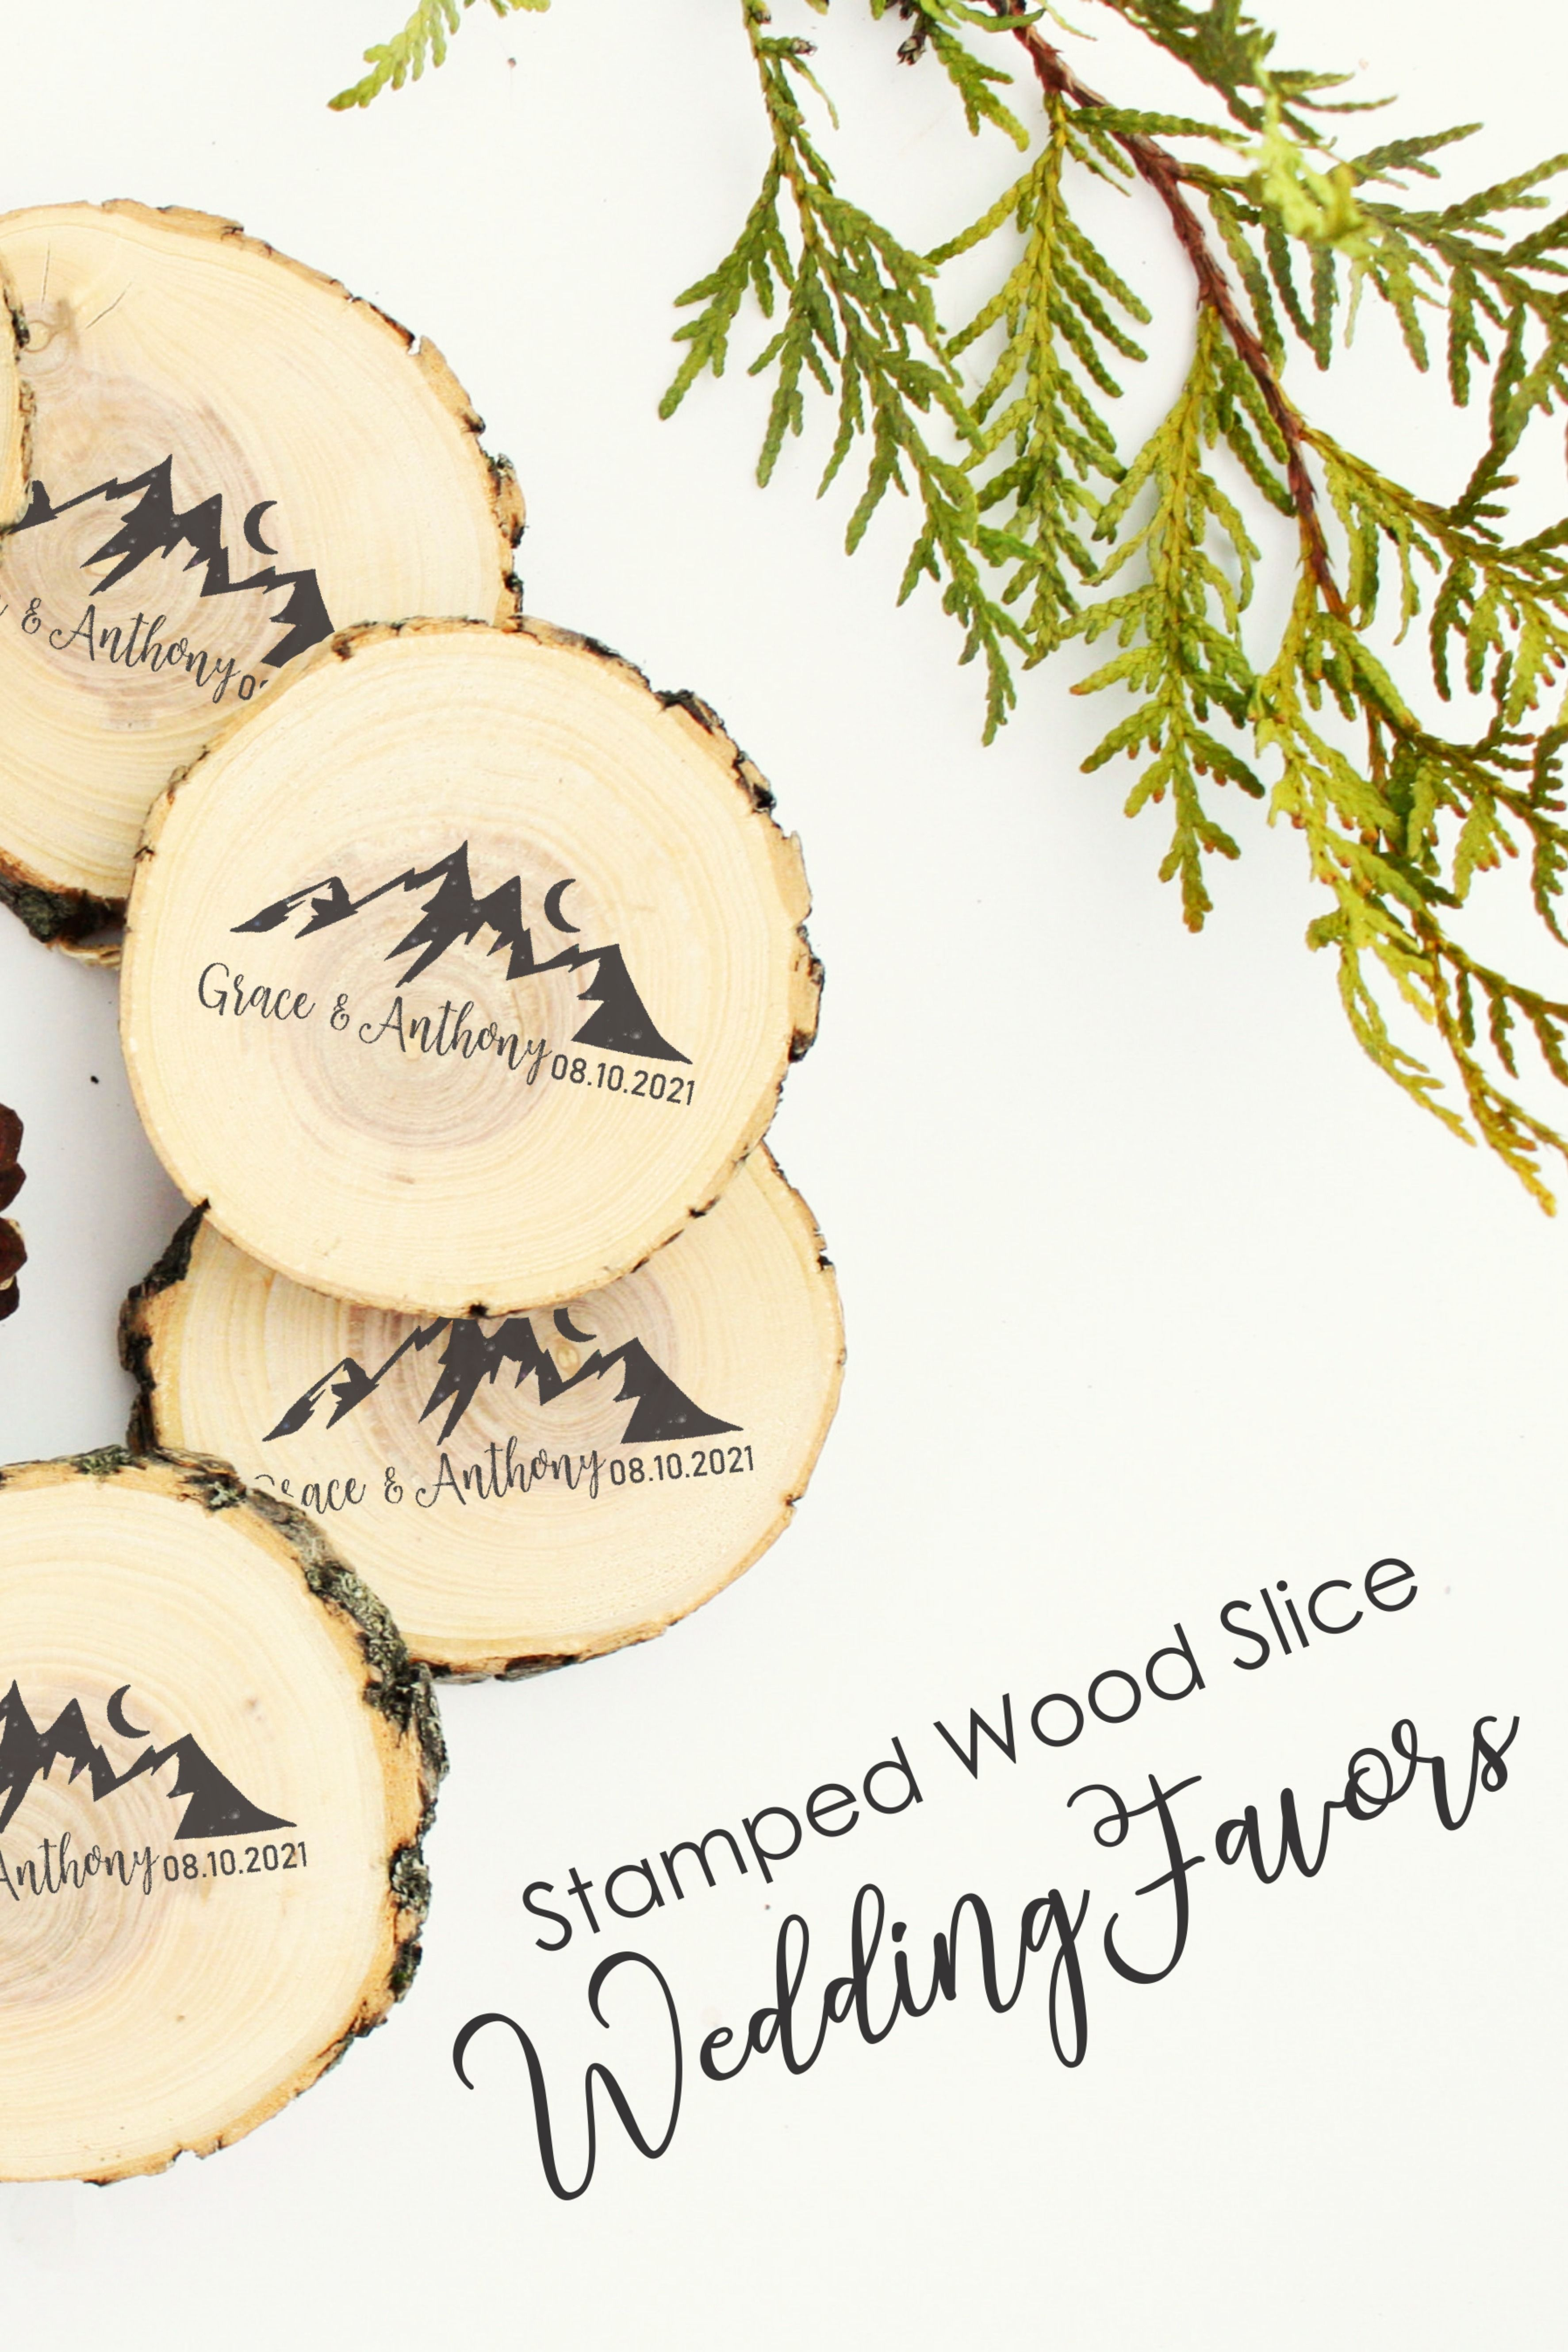 Mountain Wedding Favors From Rubber Stamps And Wood Slices Wedding Coasters Favors Wedding Saving Inexpensive Wedding Favors